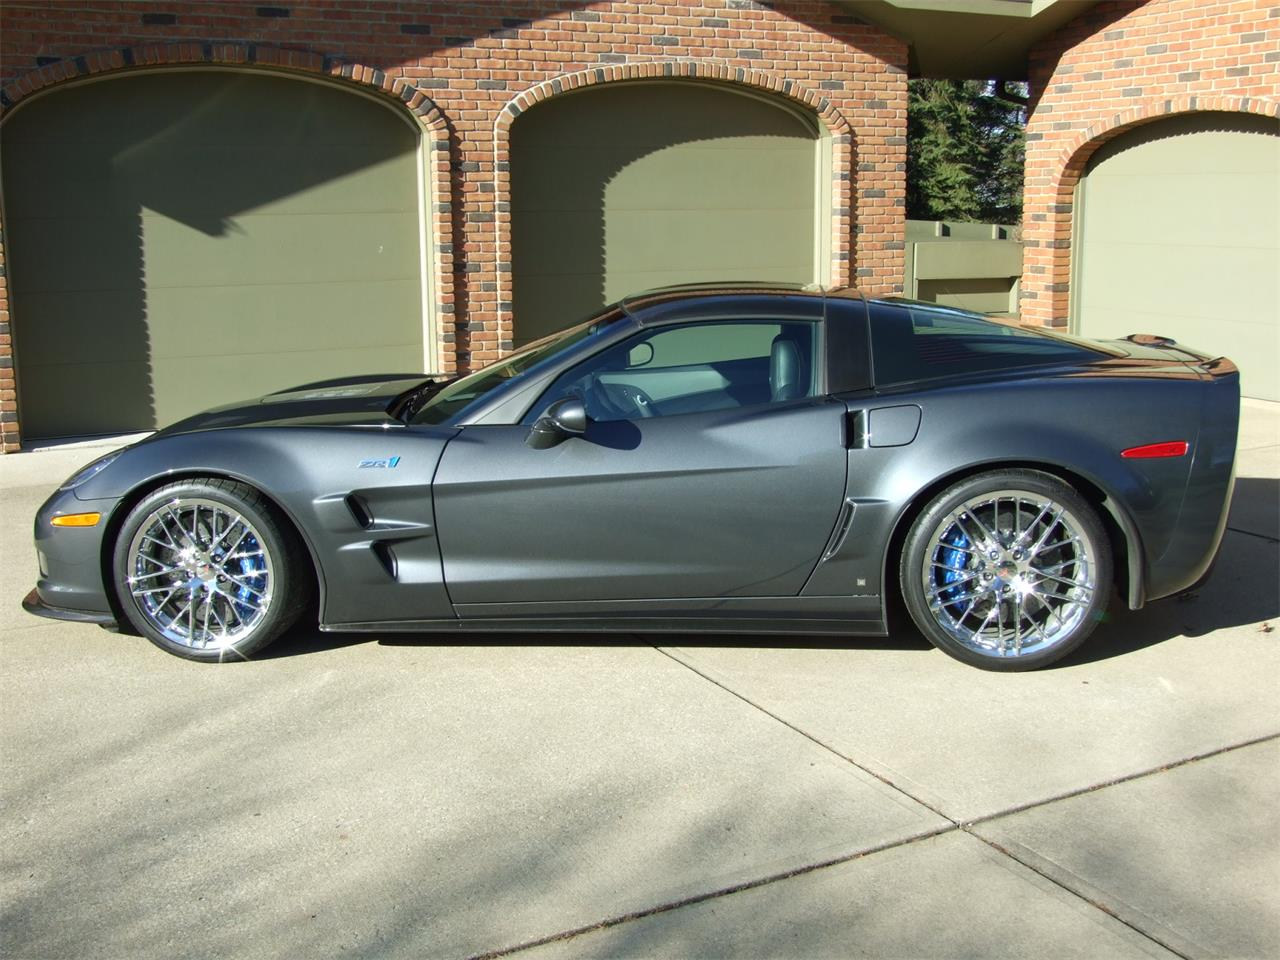 Large Picture of '09 Chevrolet Corvette ZR1 Offered by Auto Connection, Inc. - DJBI